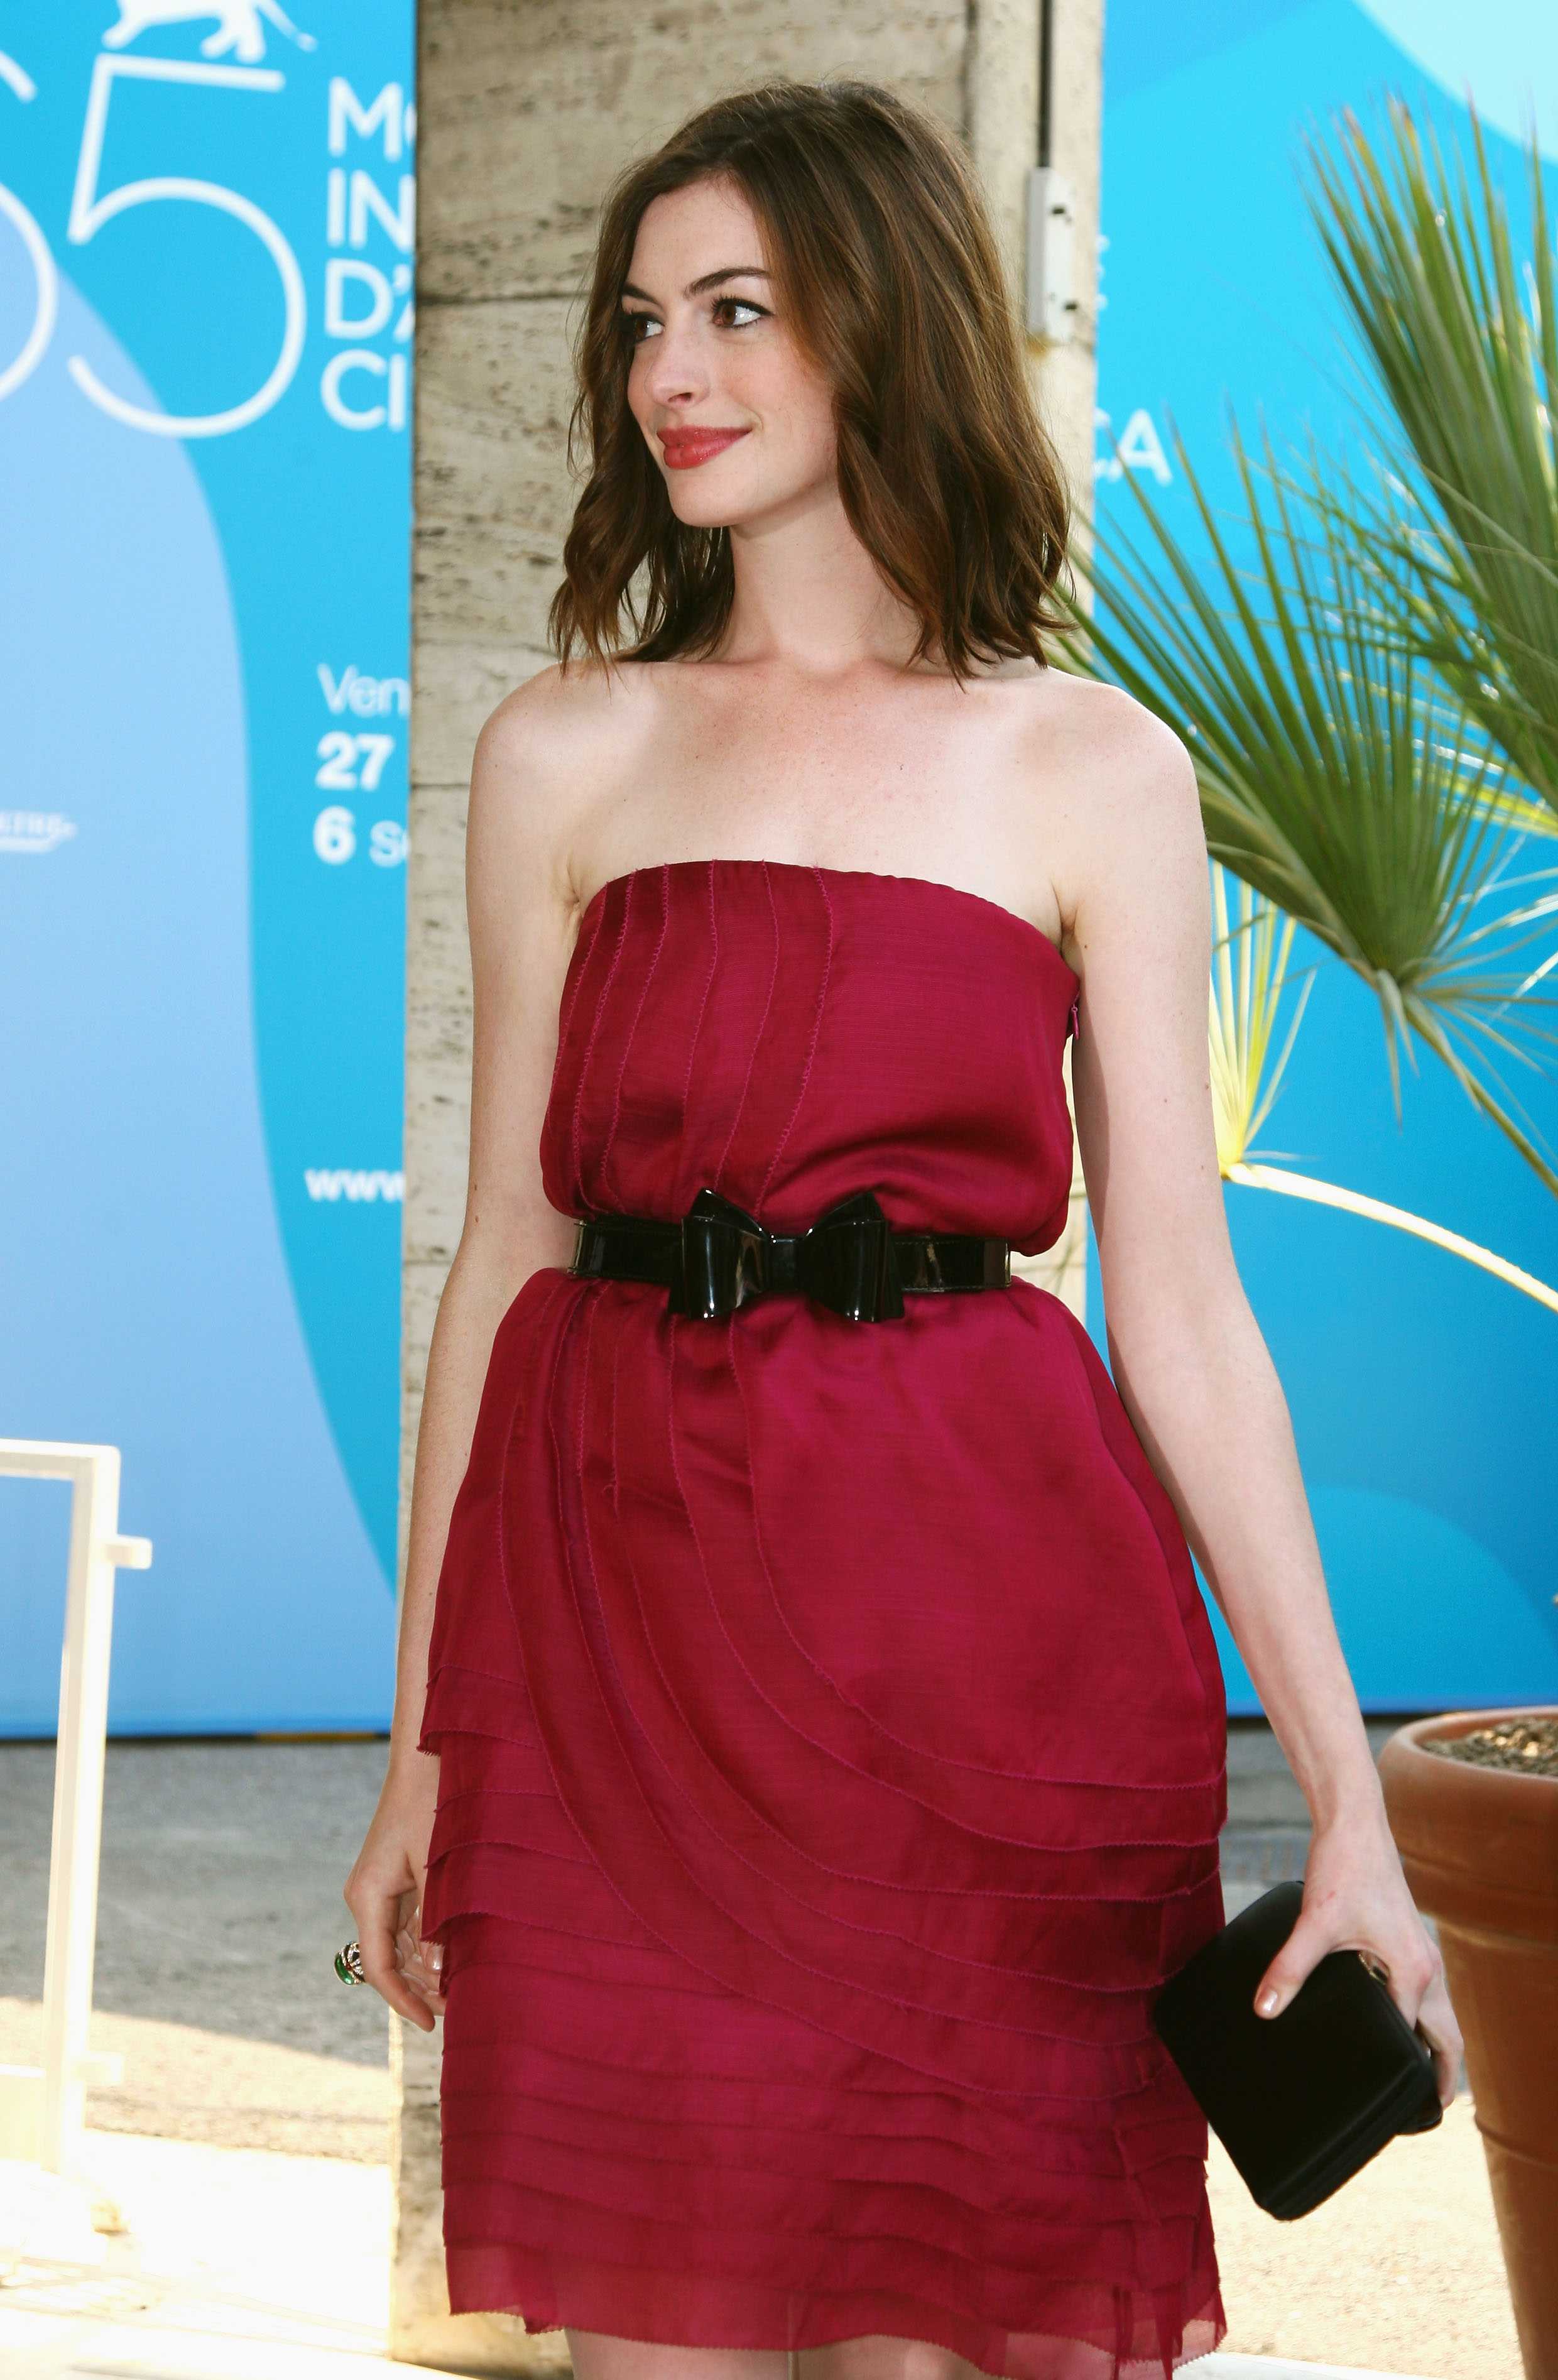 42931_Anne_Hathaway_arrives_at_the_Excelsior_Hotel_Venice-02_122_172lo.jpg